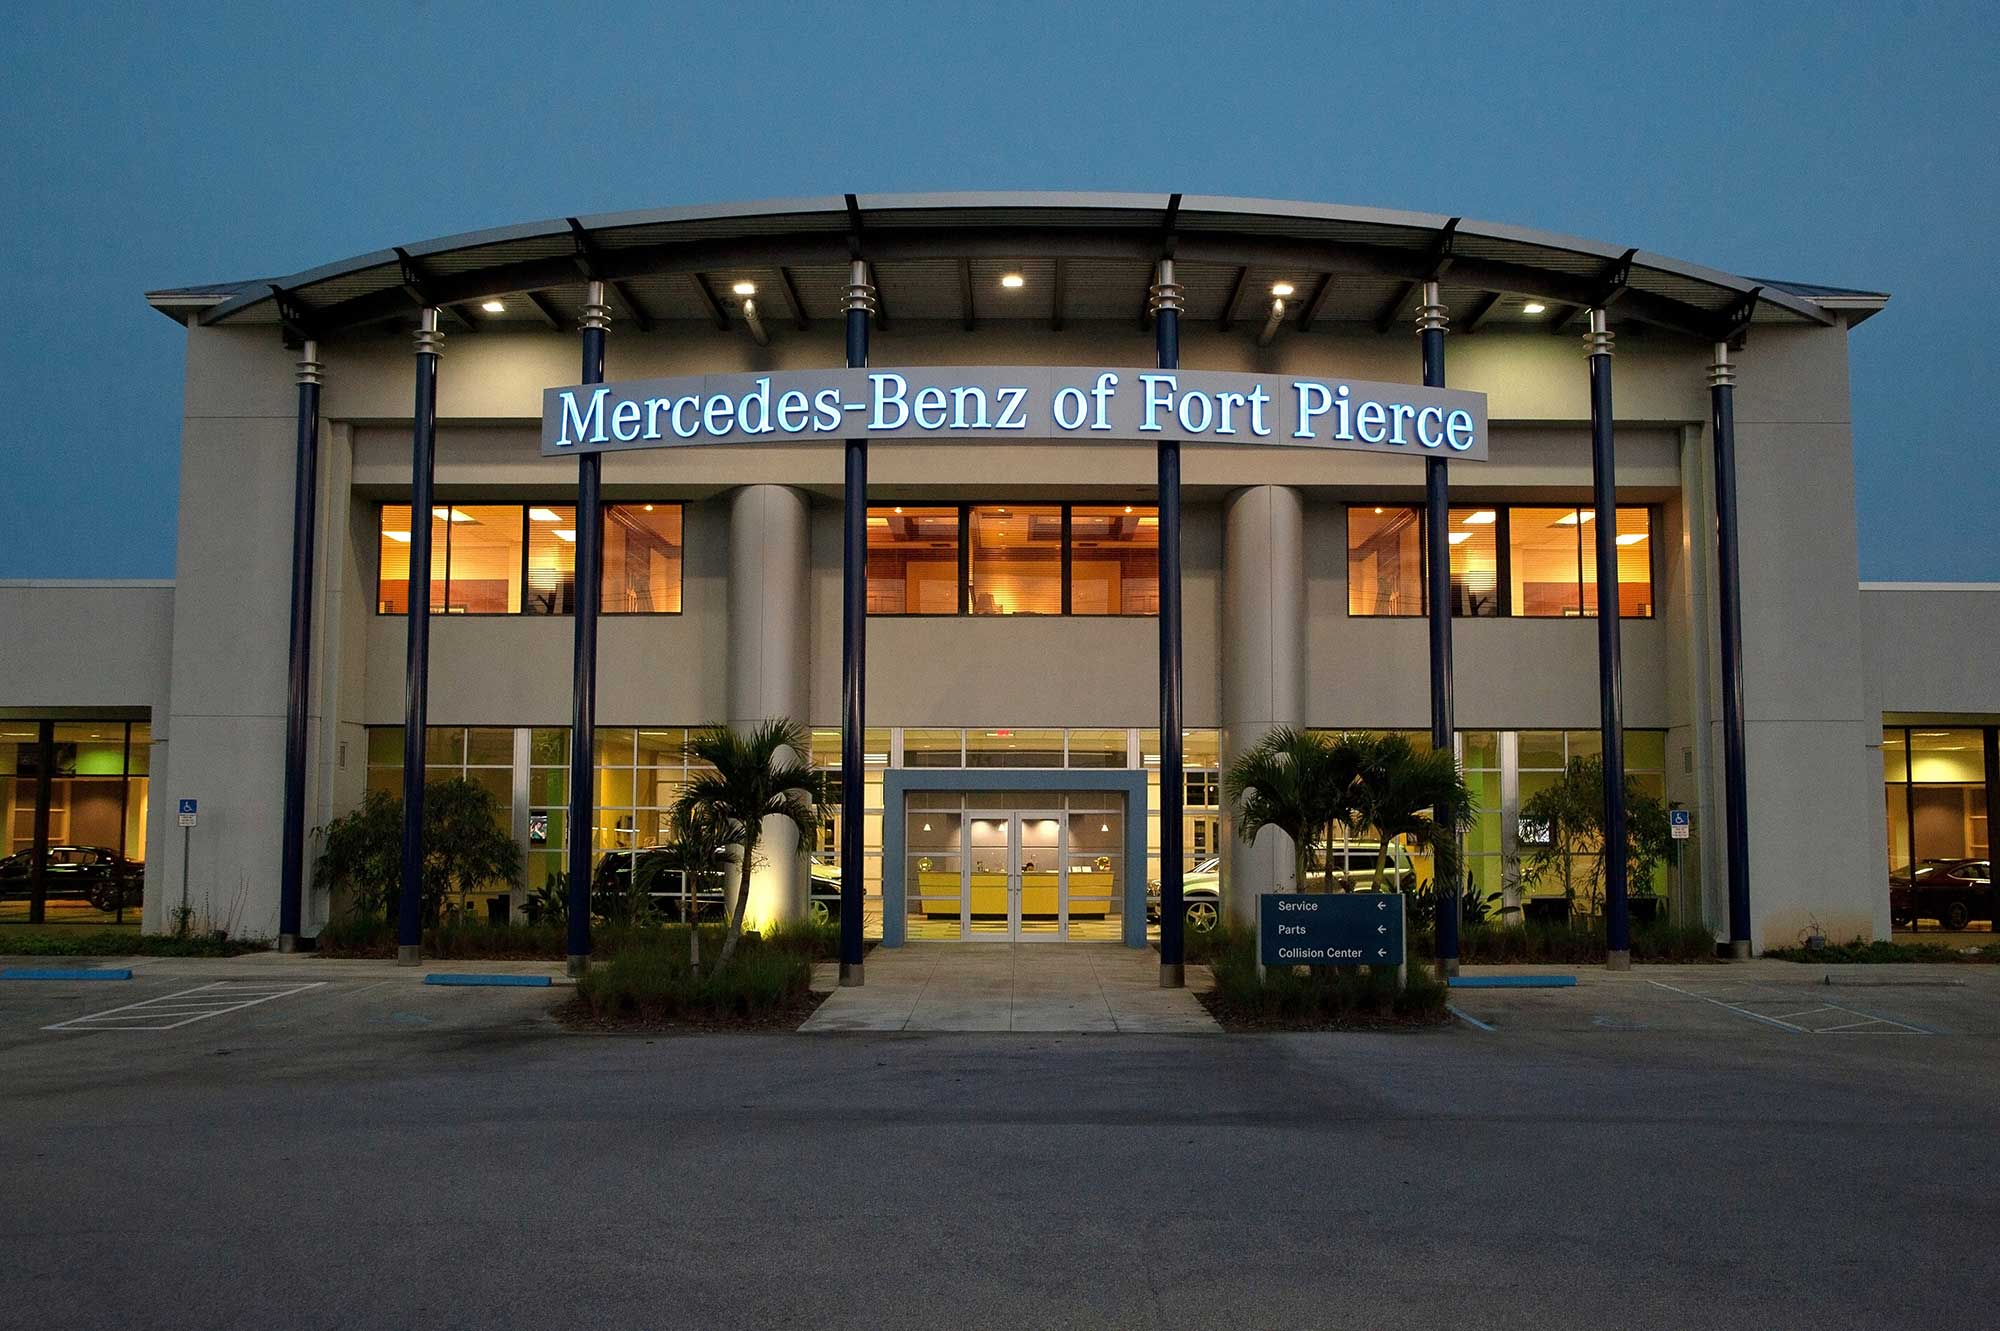 Gallery autobuildersautobuilders for Mercedes benz of fort pierce